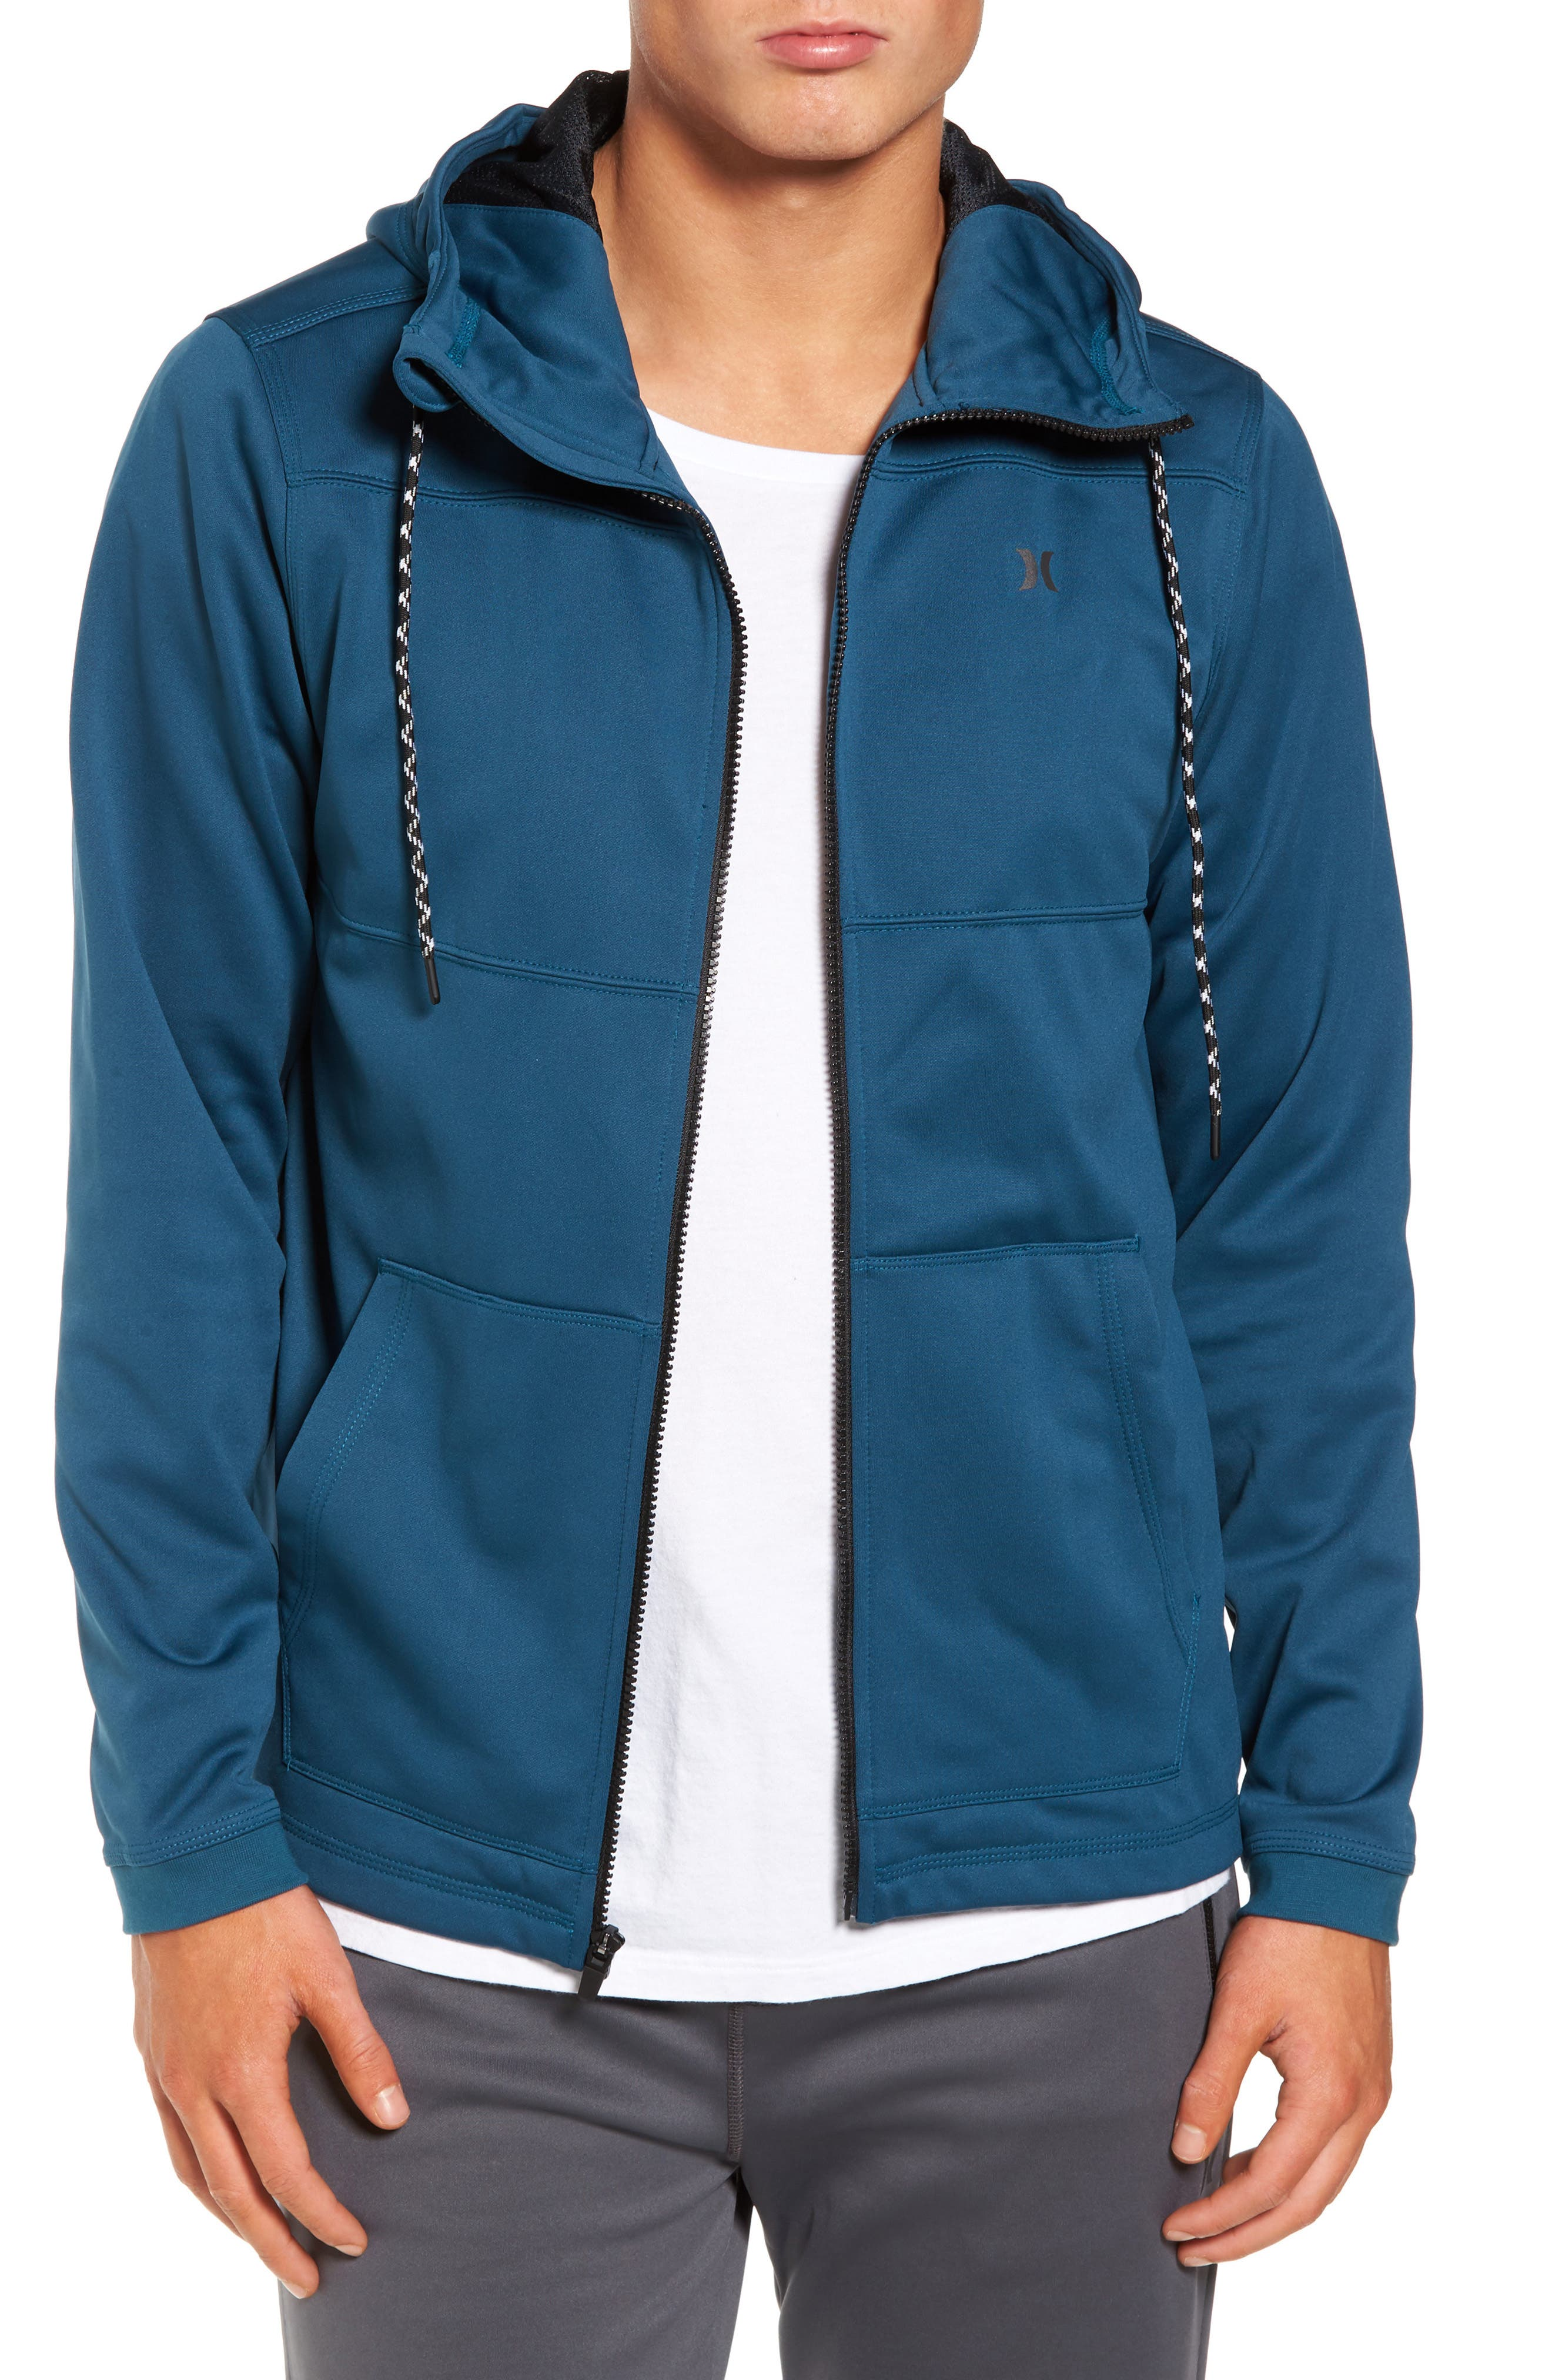 Therma Protect Zip Hoodie,                         Main,                         color, Space Blue